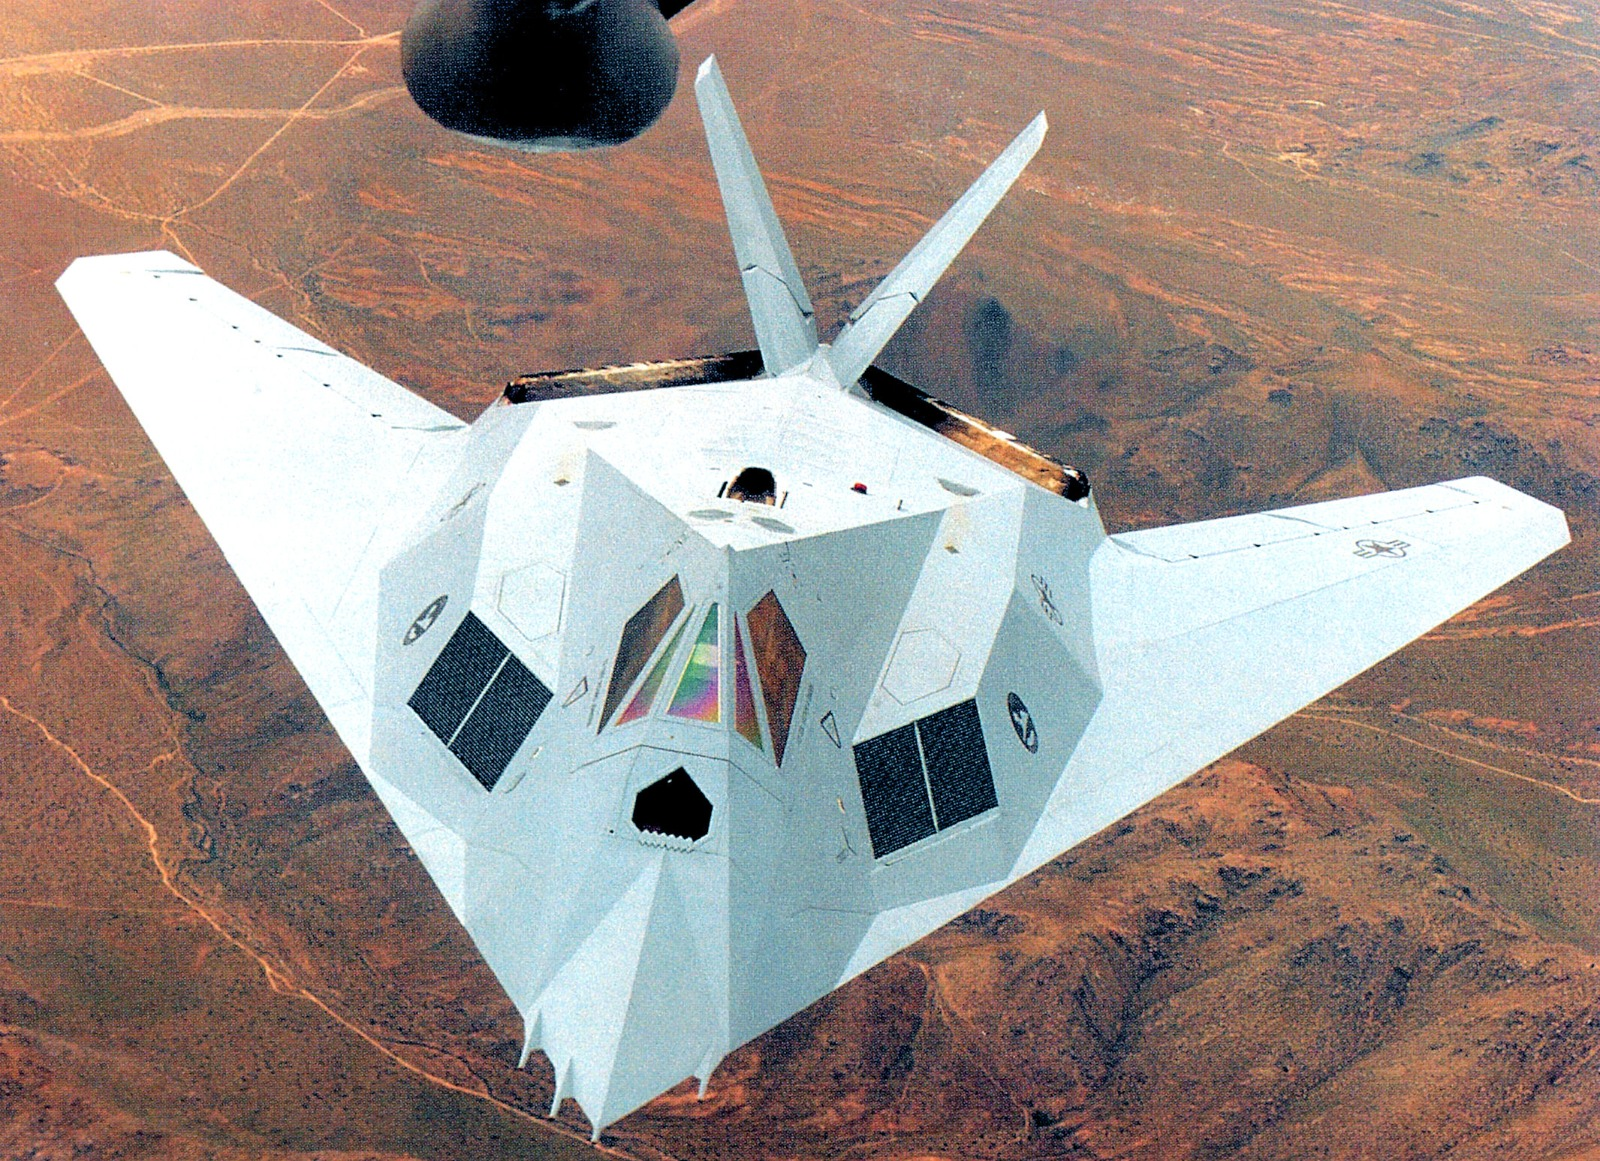 The Top-Secret Aircraft You Would Have Seen if You Had Stormed Area